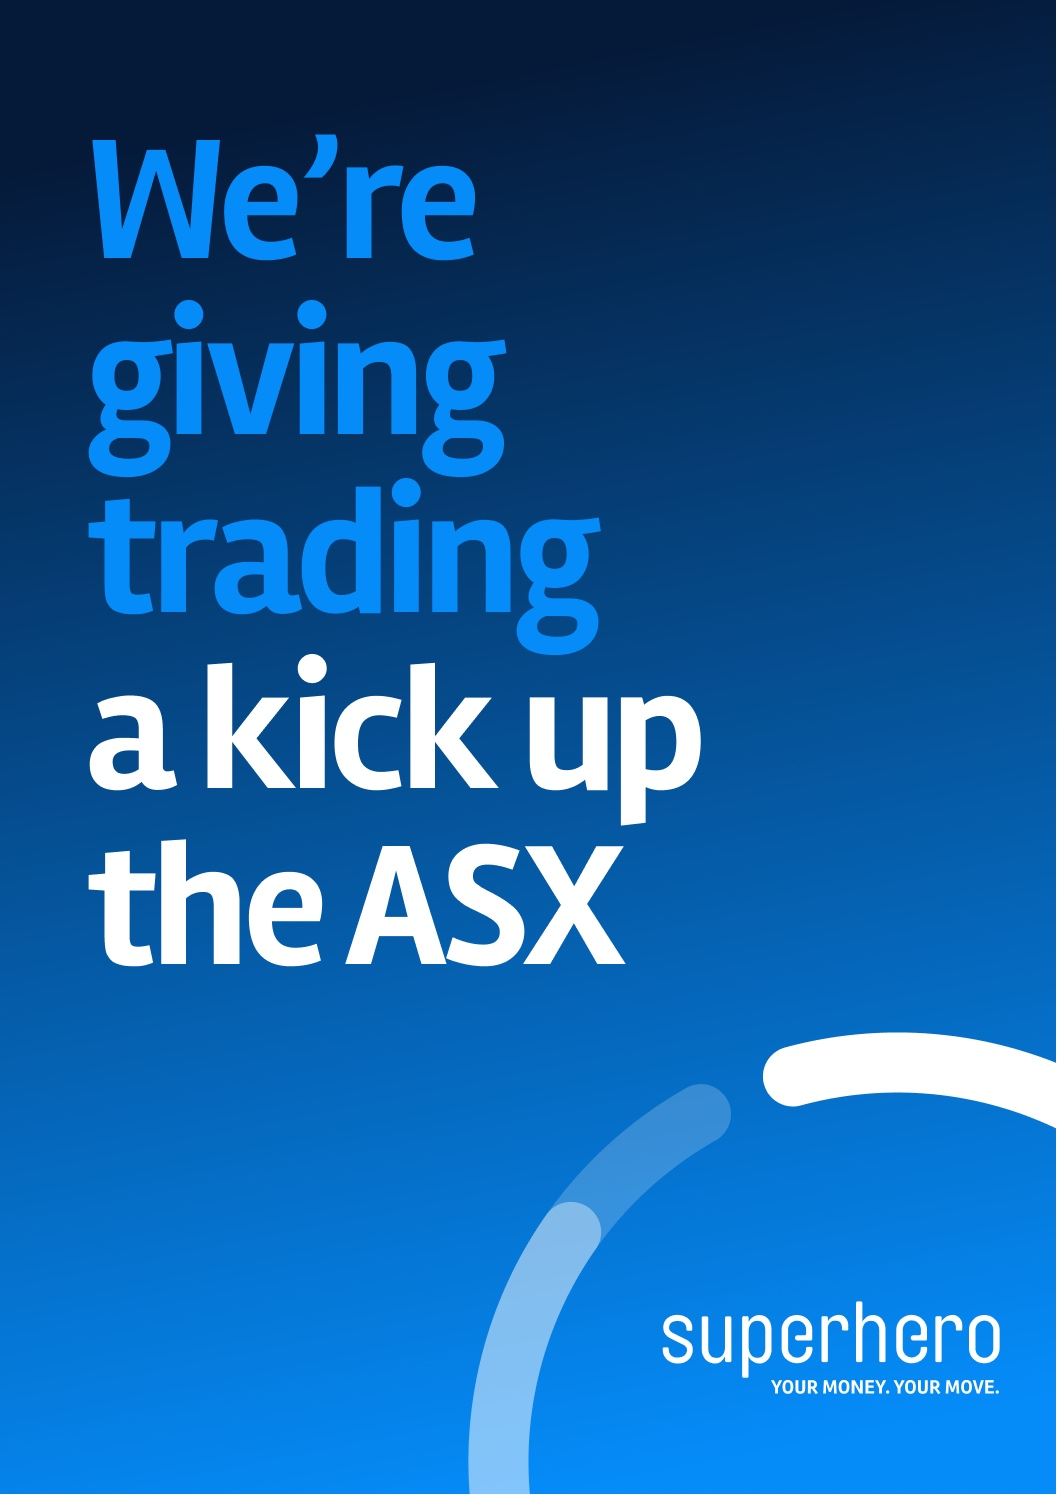 Superhero gives trading a kick up the ASX in new communications campaign via Hardhat